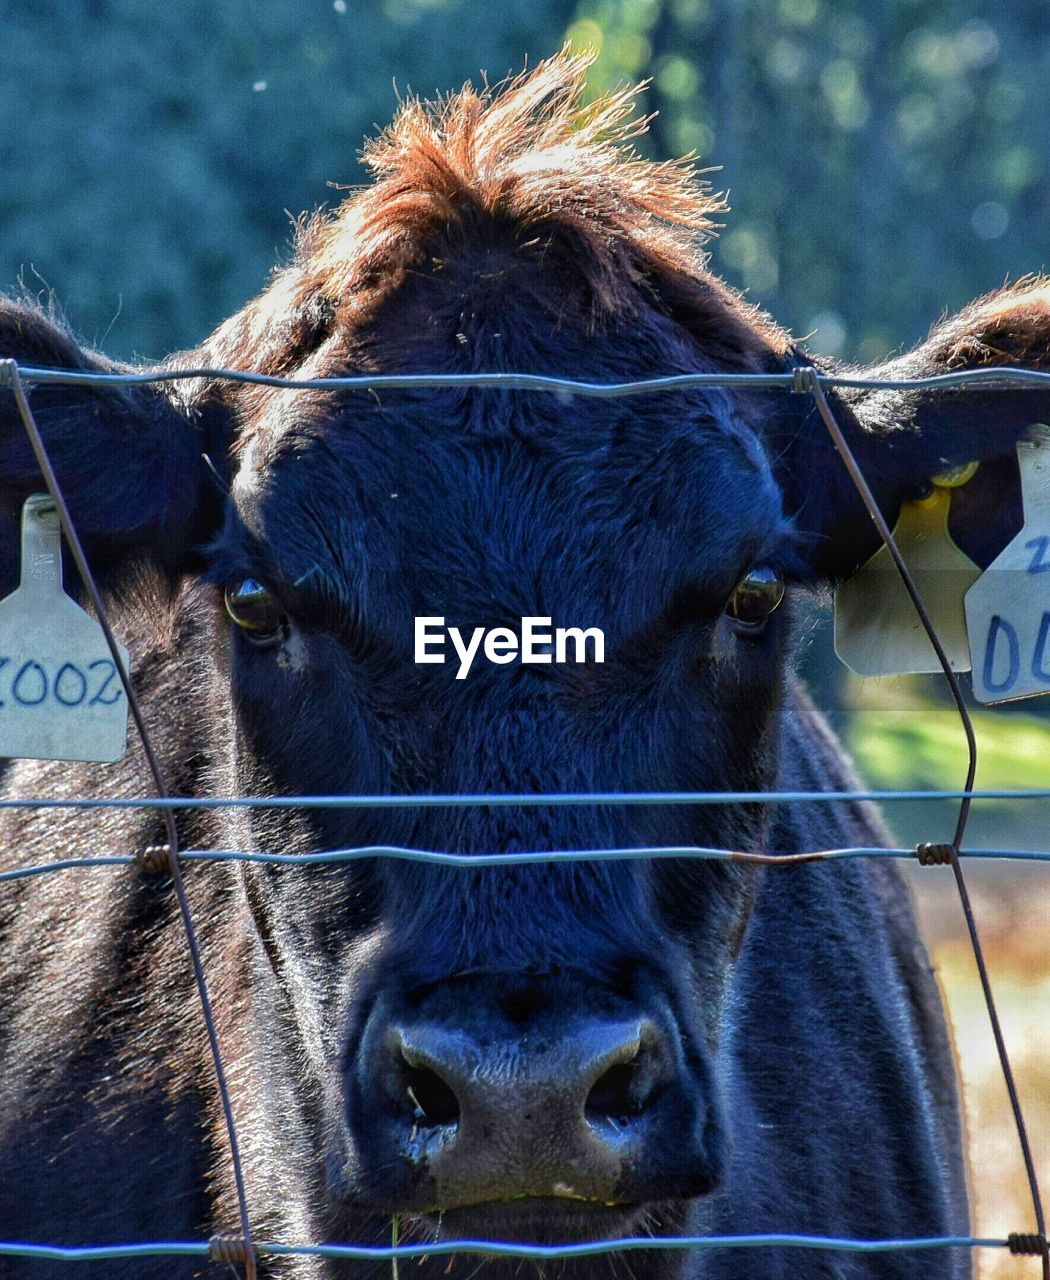 domestic, domestic animals, mammal, pets, animal, livestock, animal themes, cattle, close-up, vertebrate, one animal, cow, animal body part, animal head, livestock tag, focus on foreground, portrait, domestic cattle, day, looking at camera, no people, herbivorous, snout, animal nose